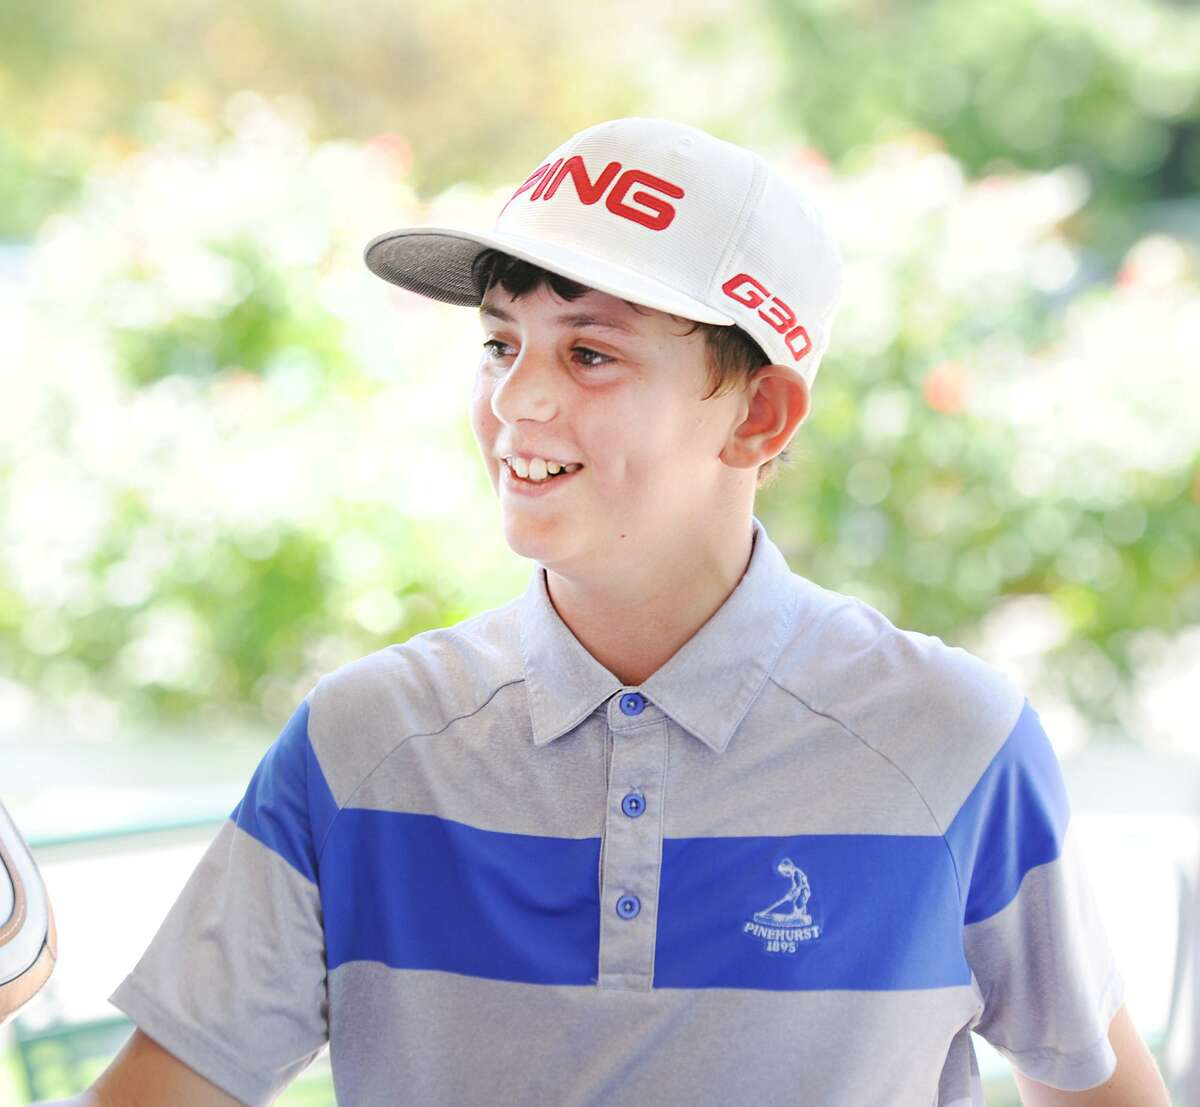 Chad Ruggiero, 12, smiles after winning the boys 10 - 13 age group by shooting an 82 on an 18-hole course during the Joe Felder PGA Greenwich Junior Town Golf Tournament at Griffith E. Harris Golf Club in Greenwich, Conn., Wednesday, July 18, 2018.